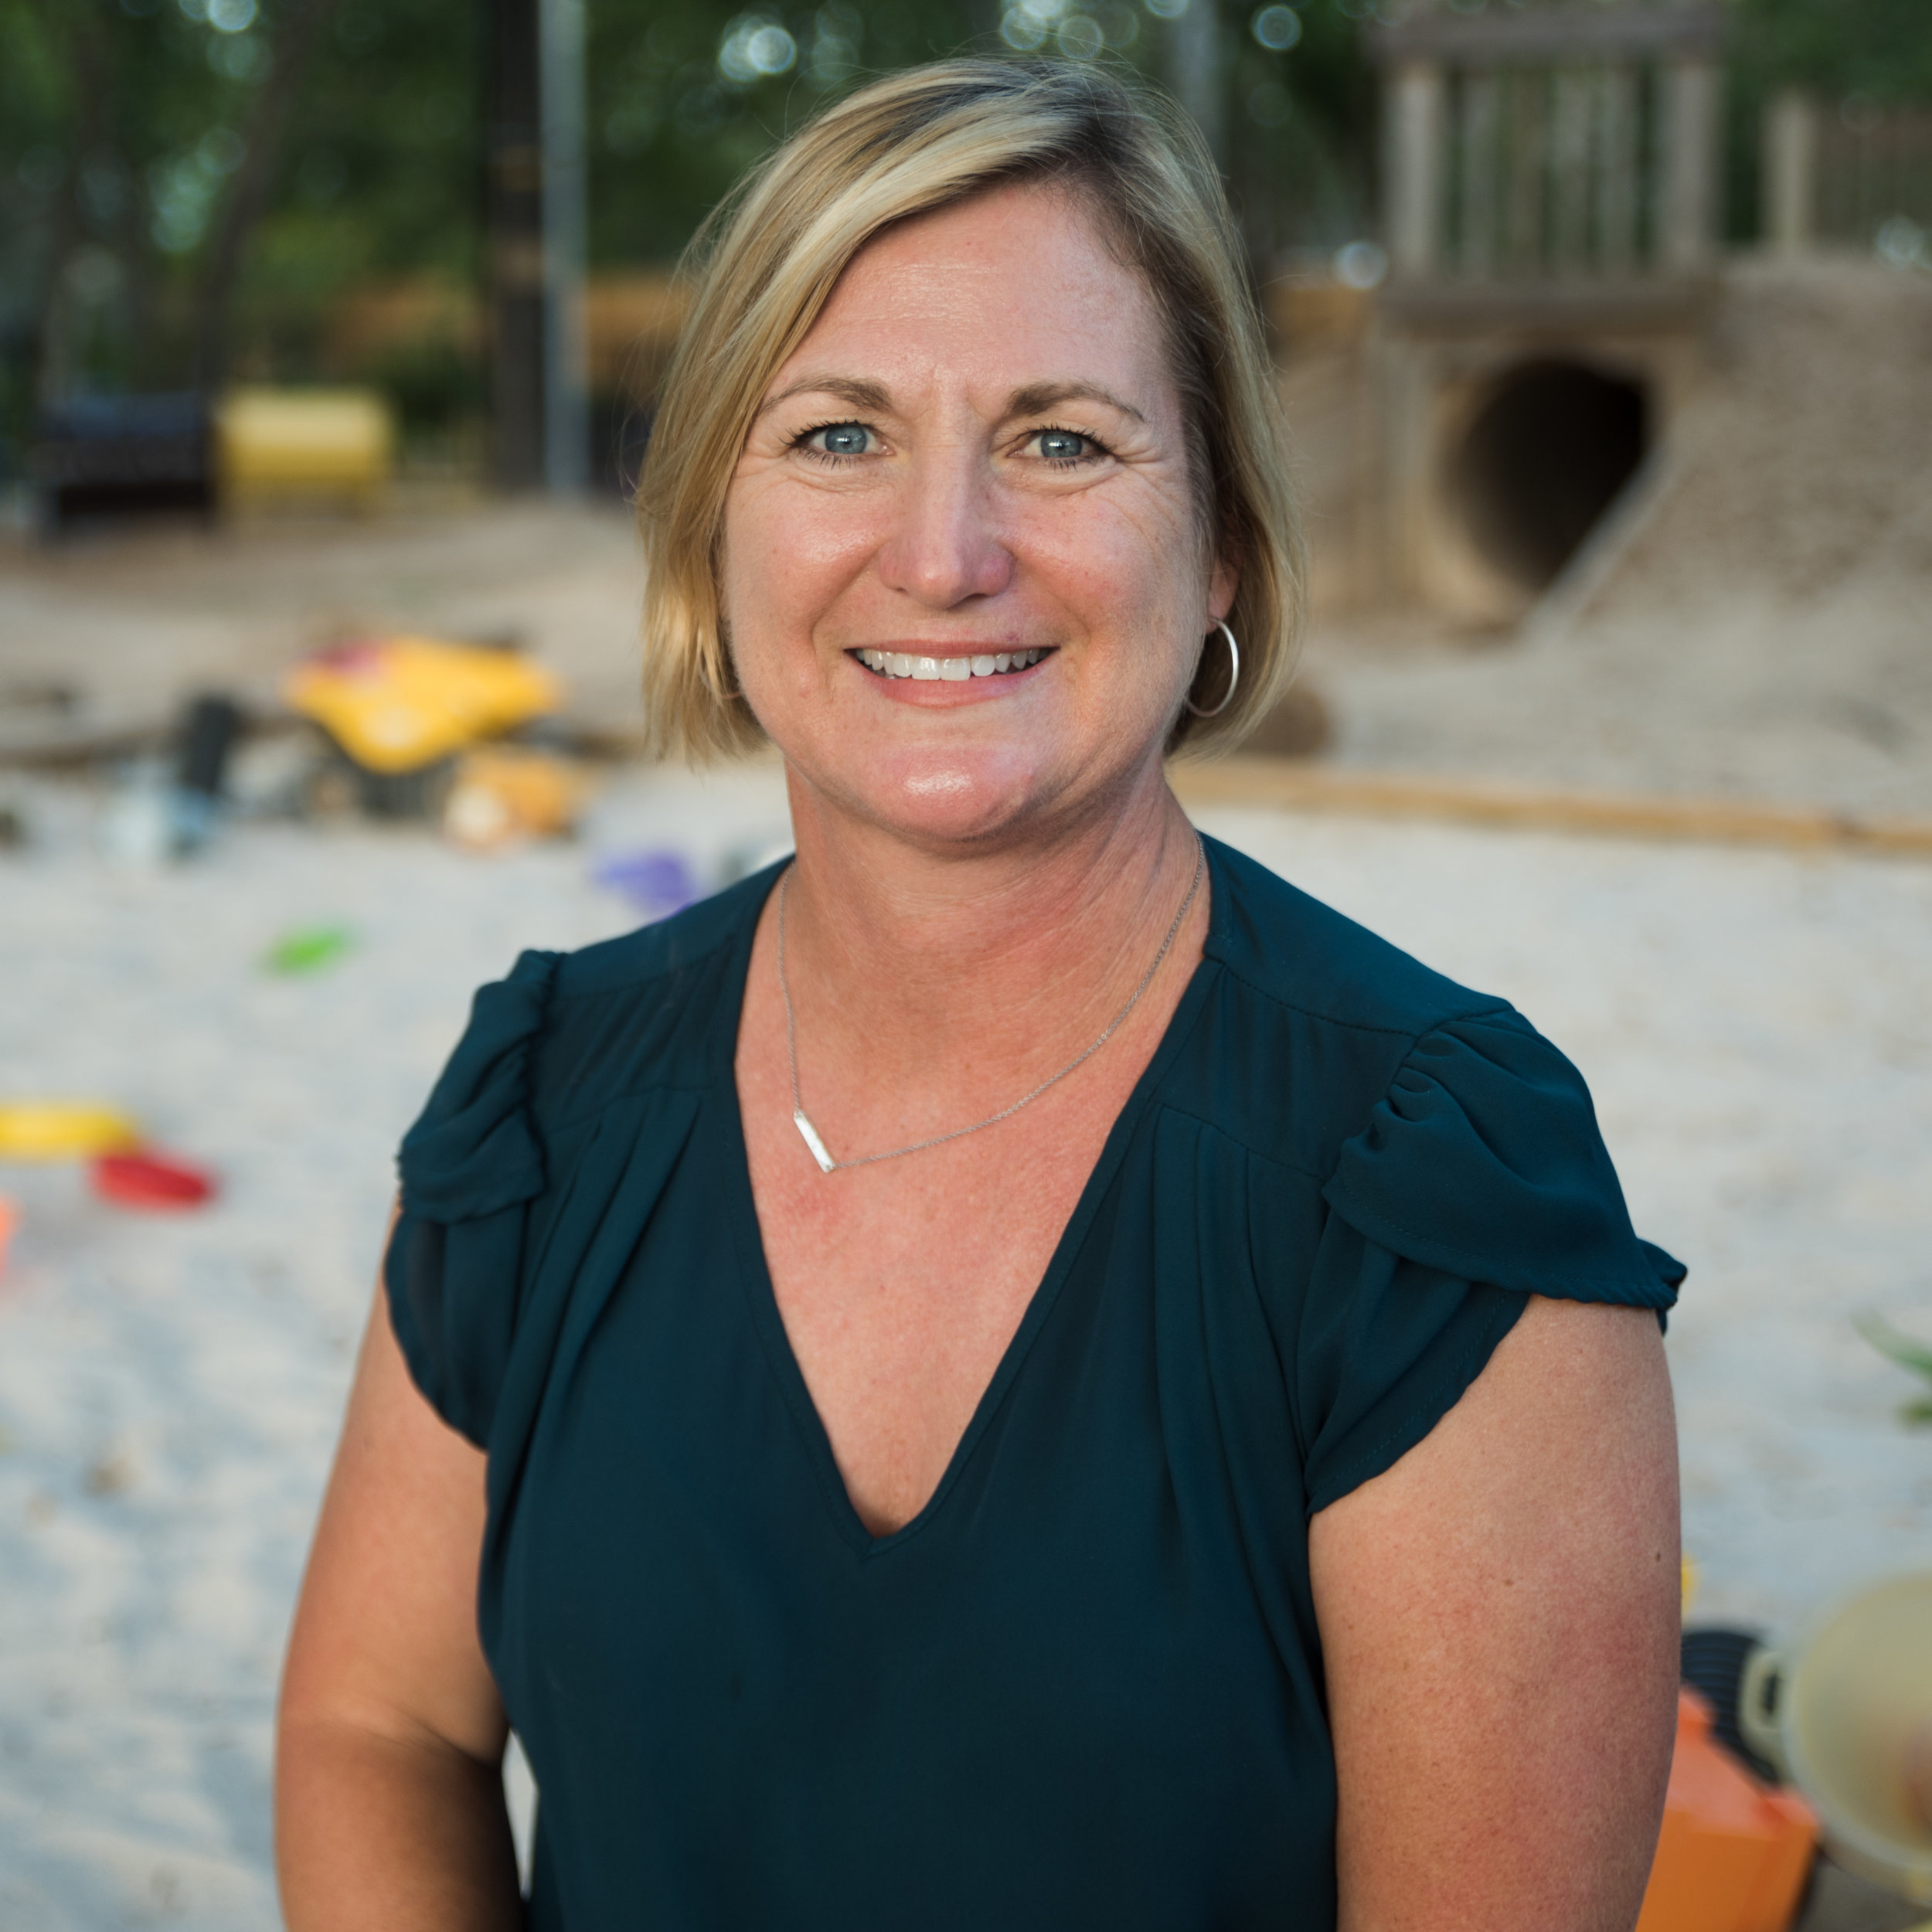 Beth Lawrence - is our current Head of School. She embraces the challenge of honoring the STELC tradition of teaching through exploration and discovery while meeting the academic and scheduling needs of children and families in our community.